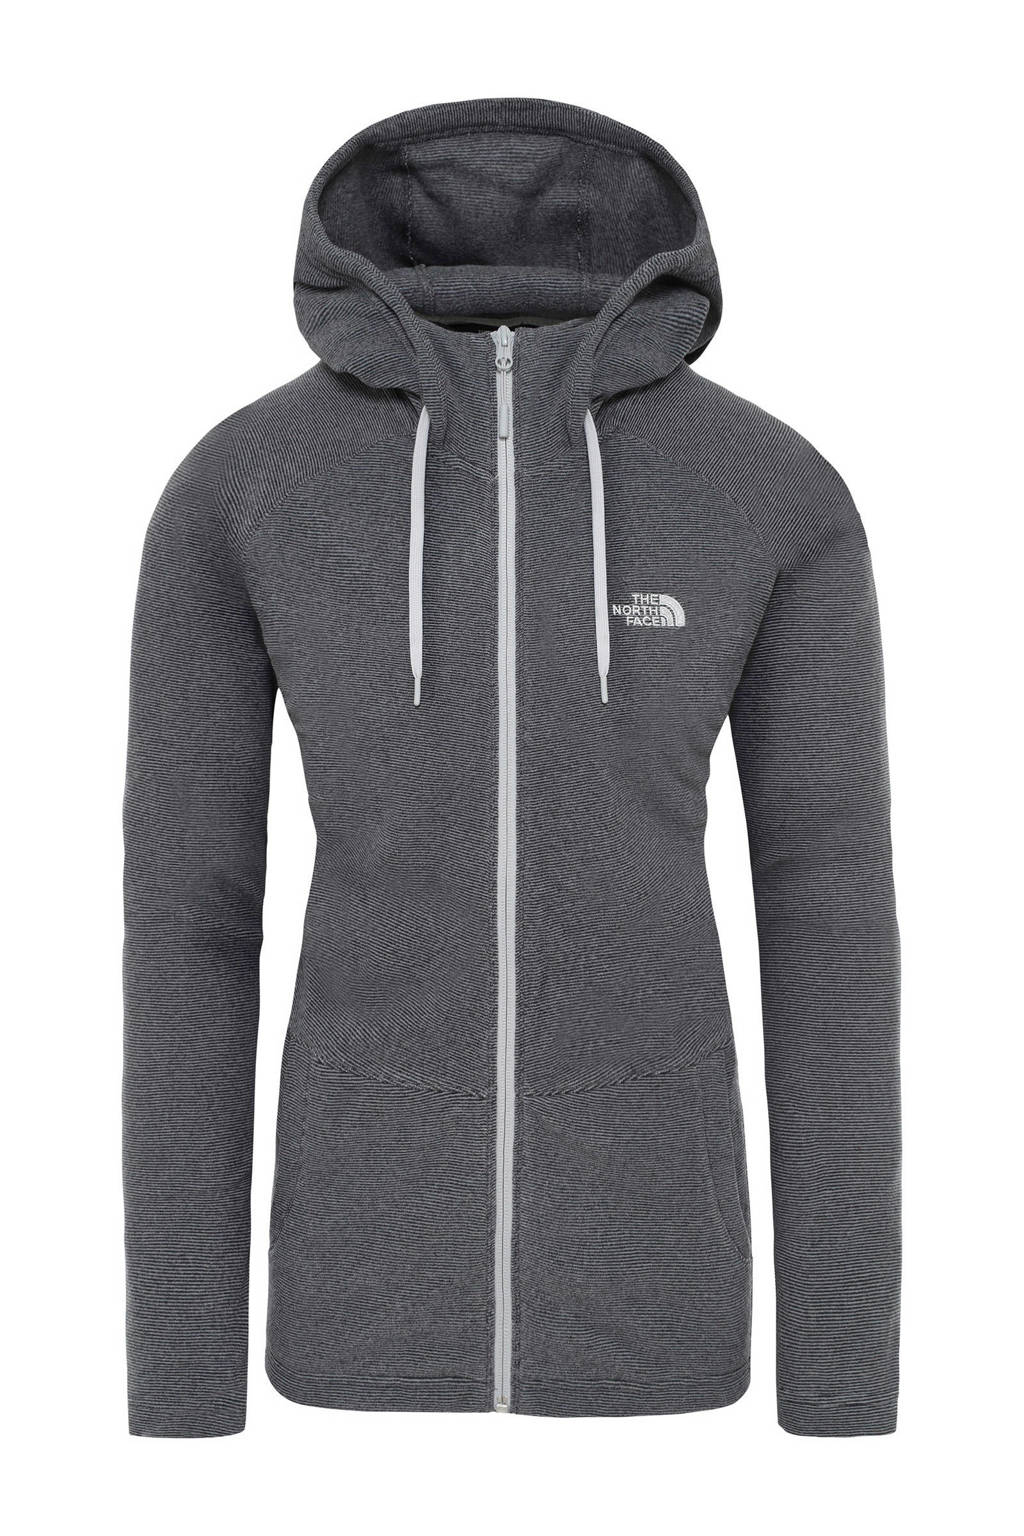 The North Face   hoodie Mezzaluna zwart, Tnf-black-stripe